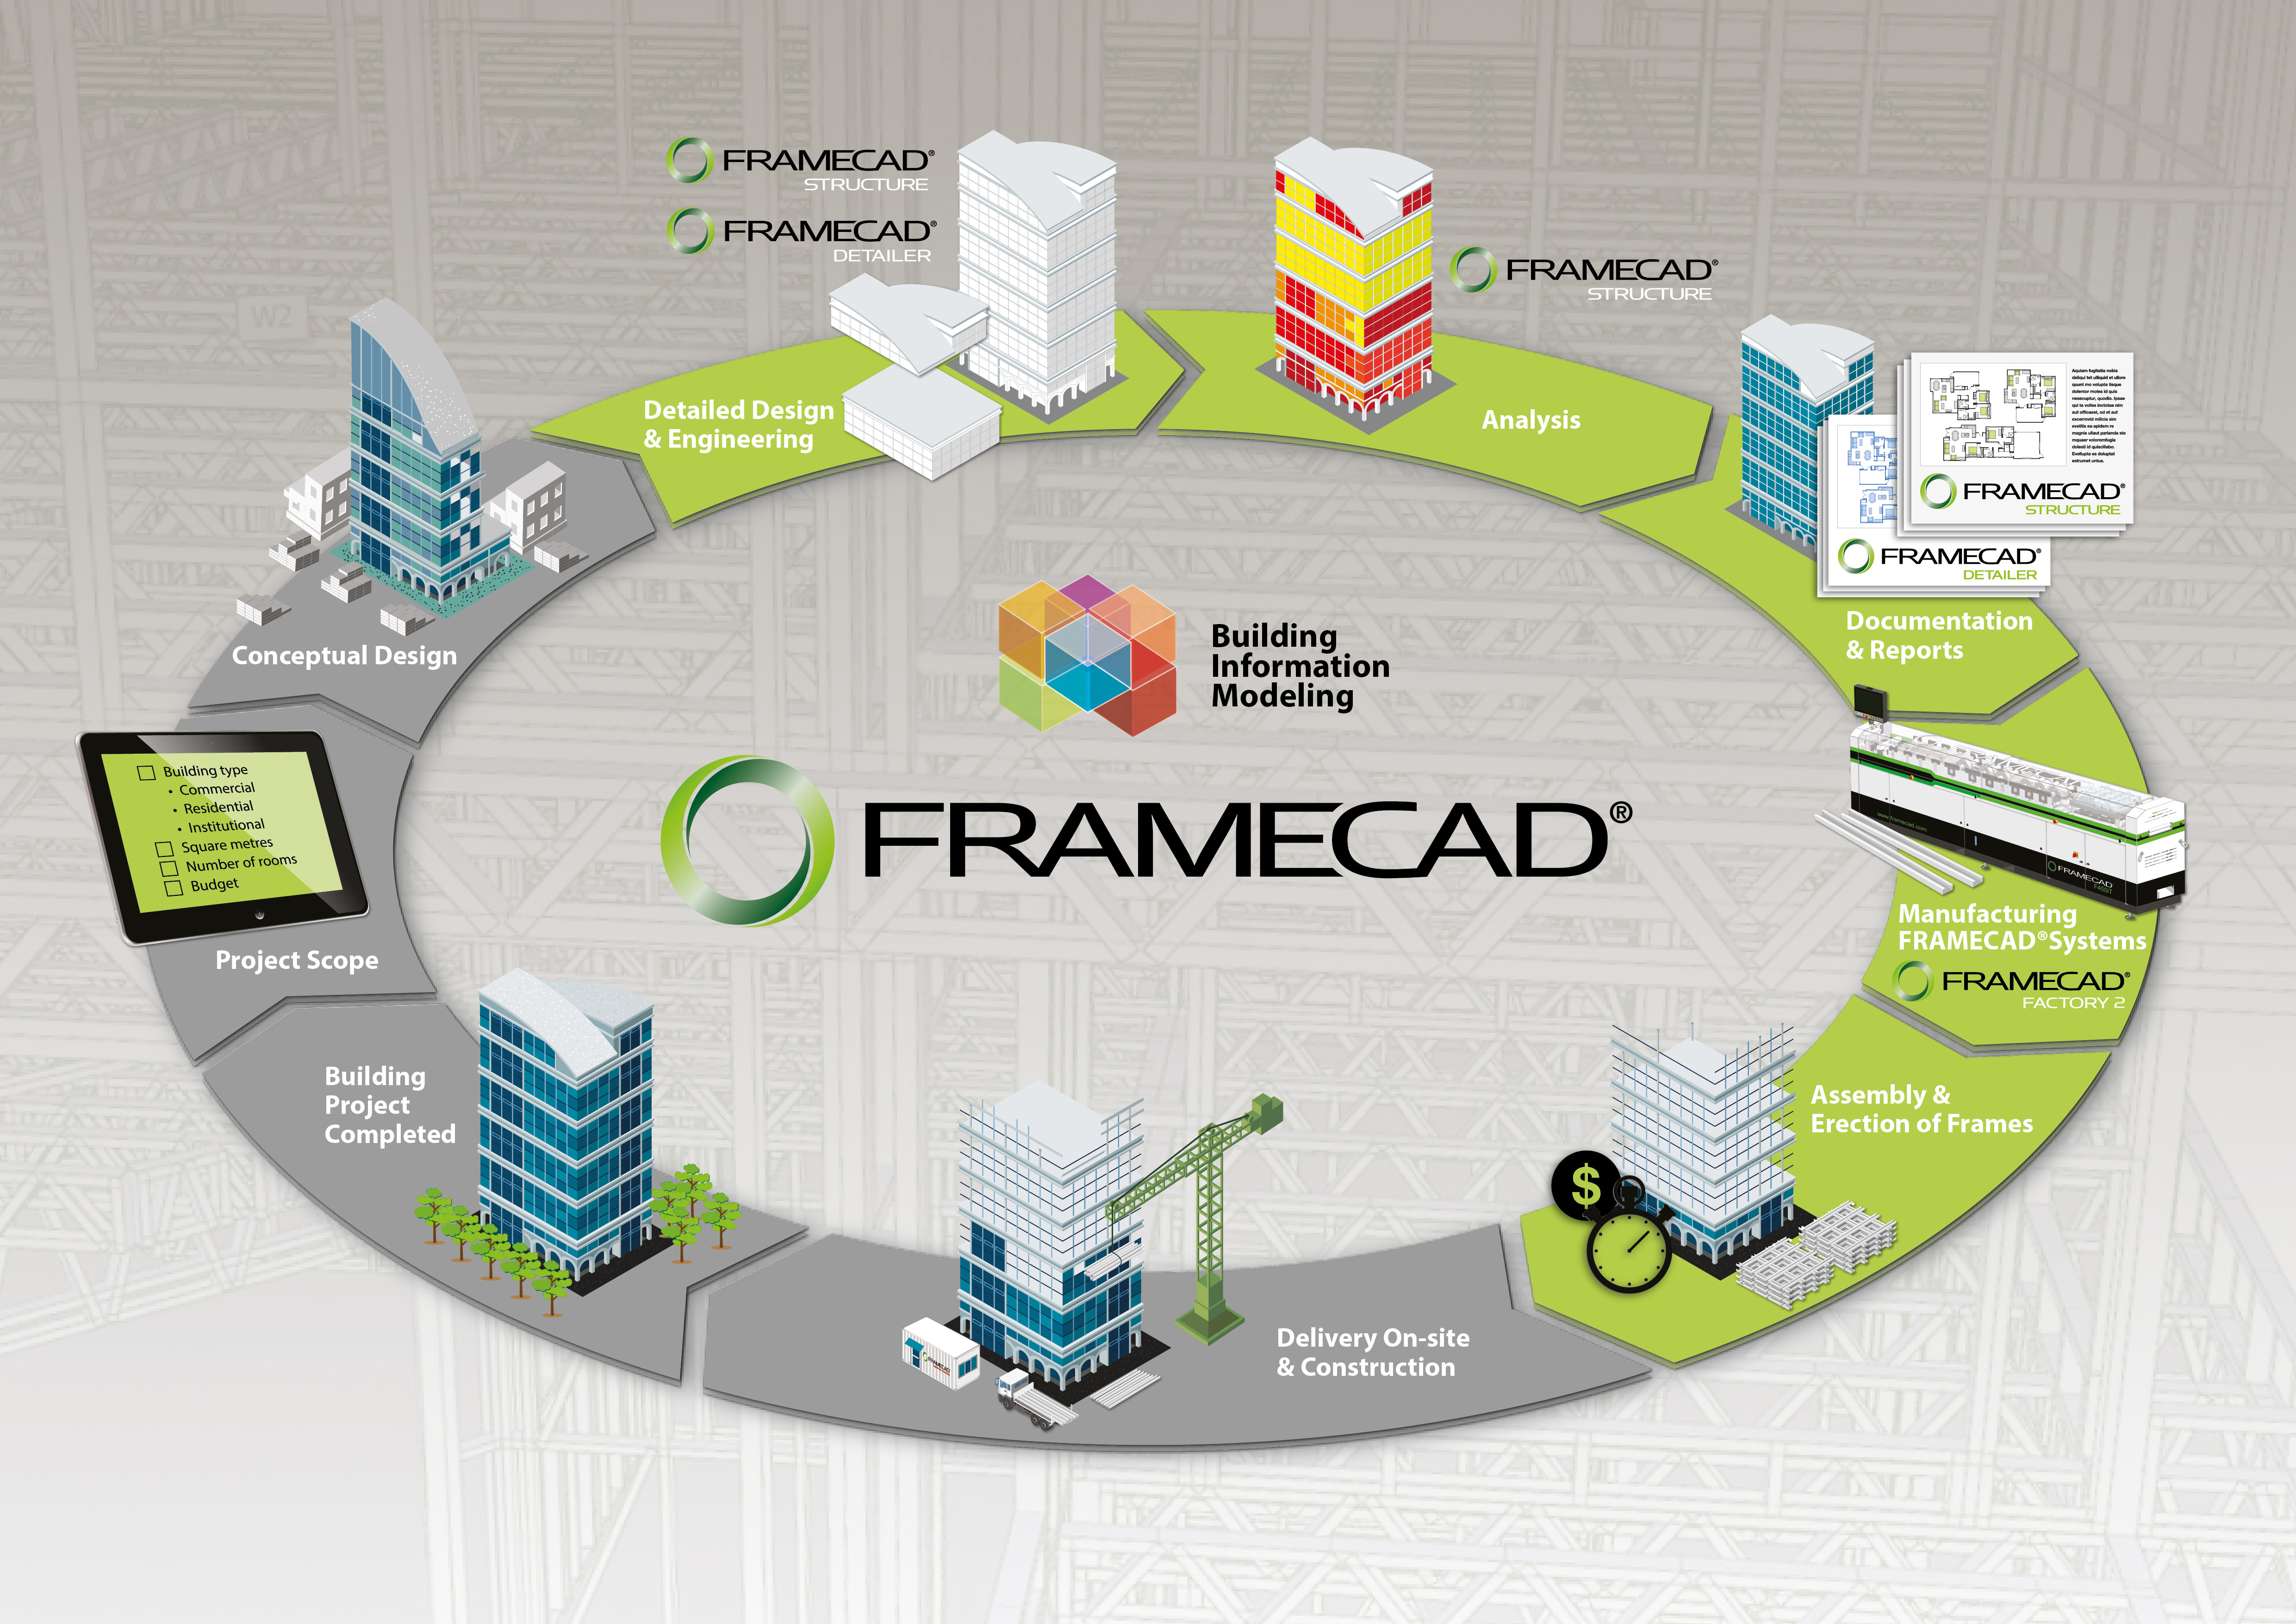 FRAMECAD, complete end-to-end CFS system with advanced engineering design software, manufacturing technology and a global support network.